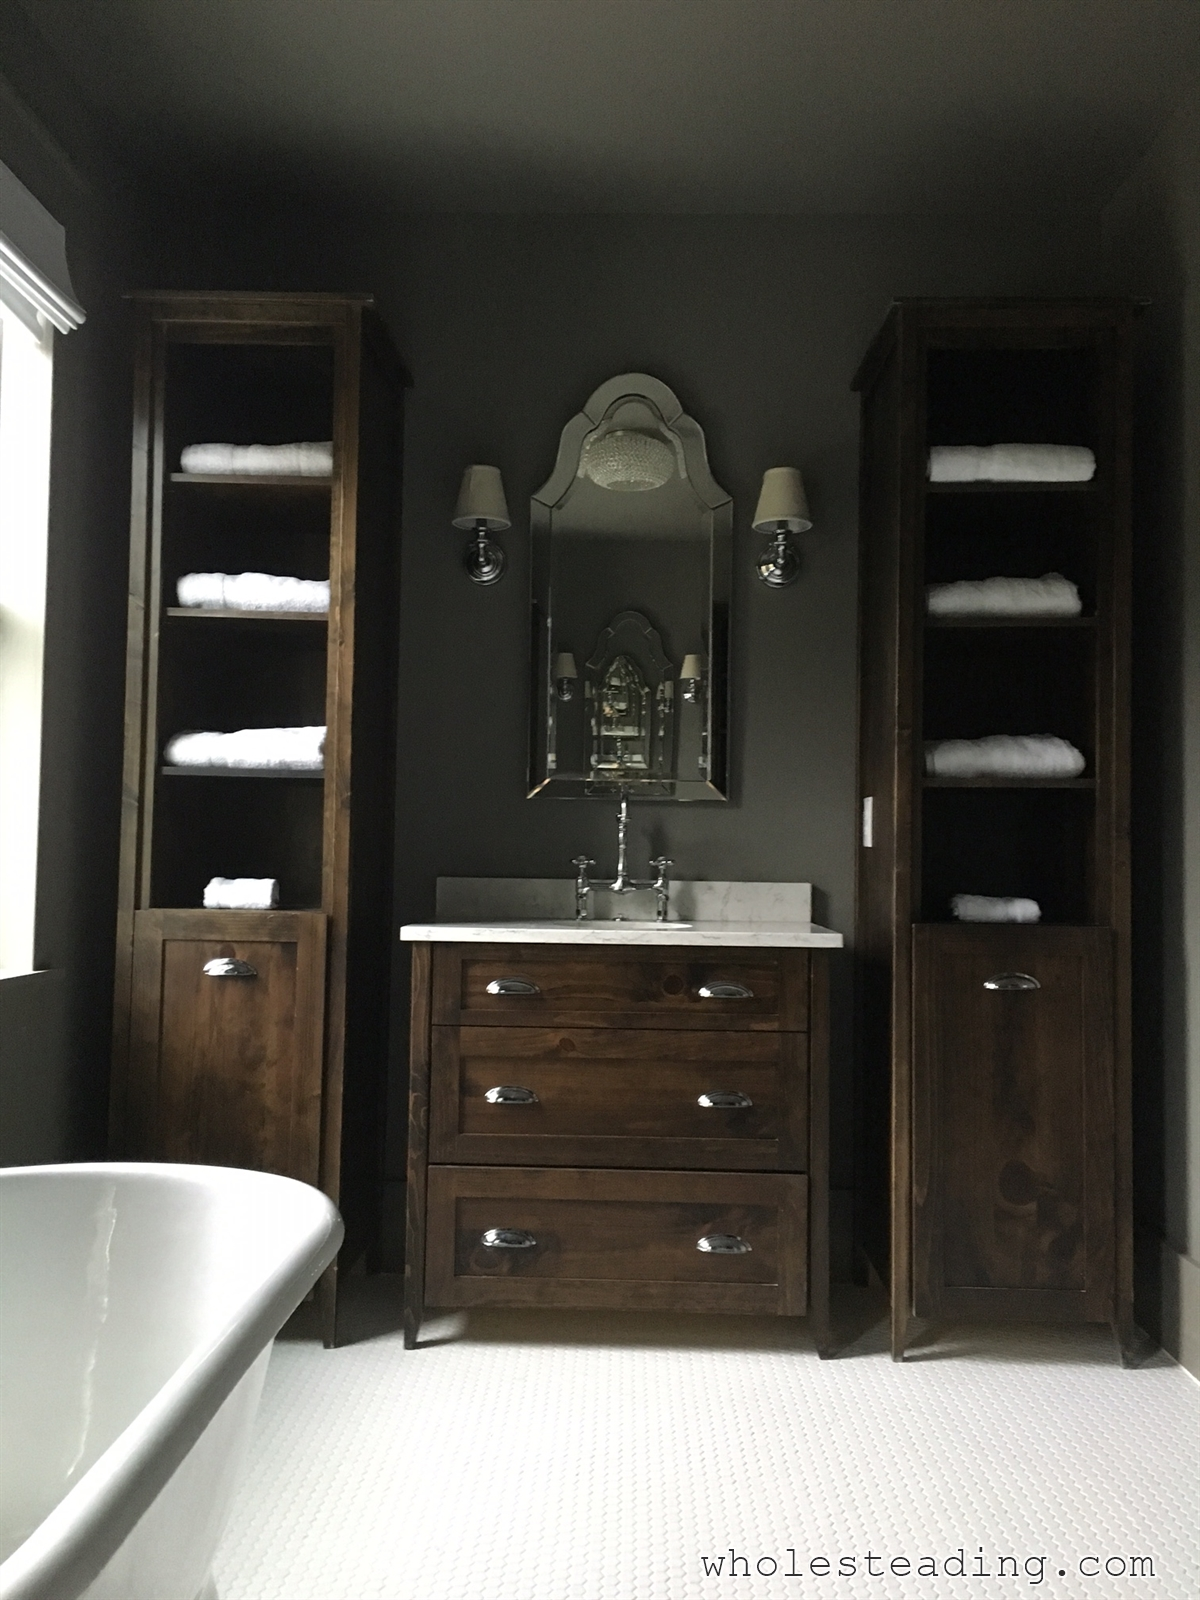 bathroom double vanity cabinets bathroom vanities wholesteading 11472